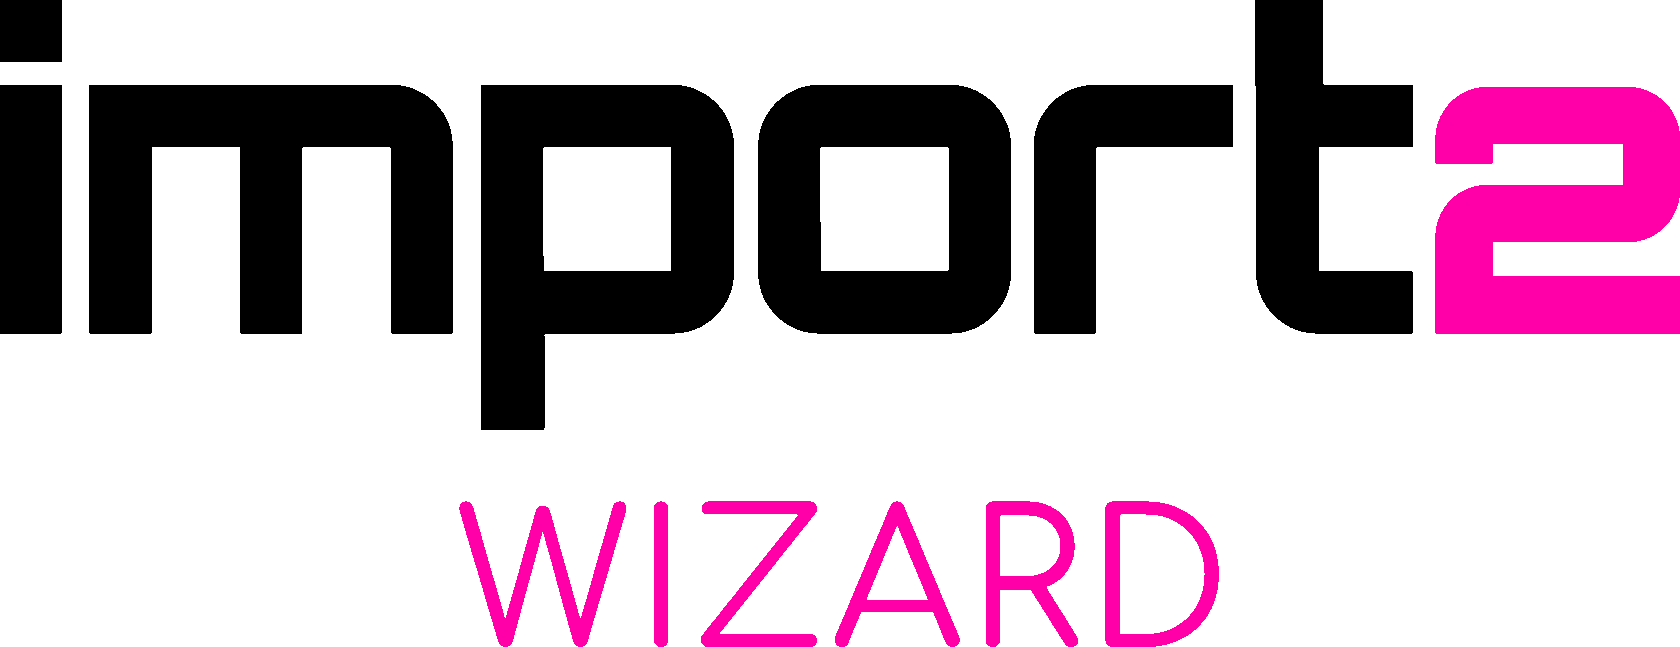 Import2 Wizard